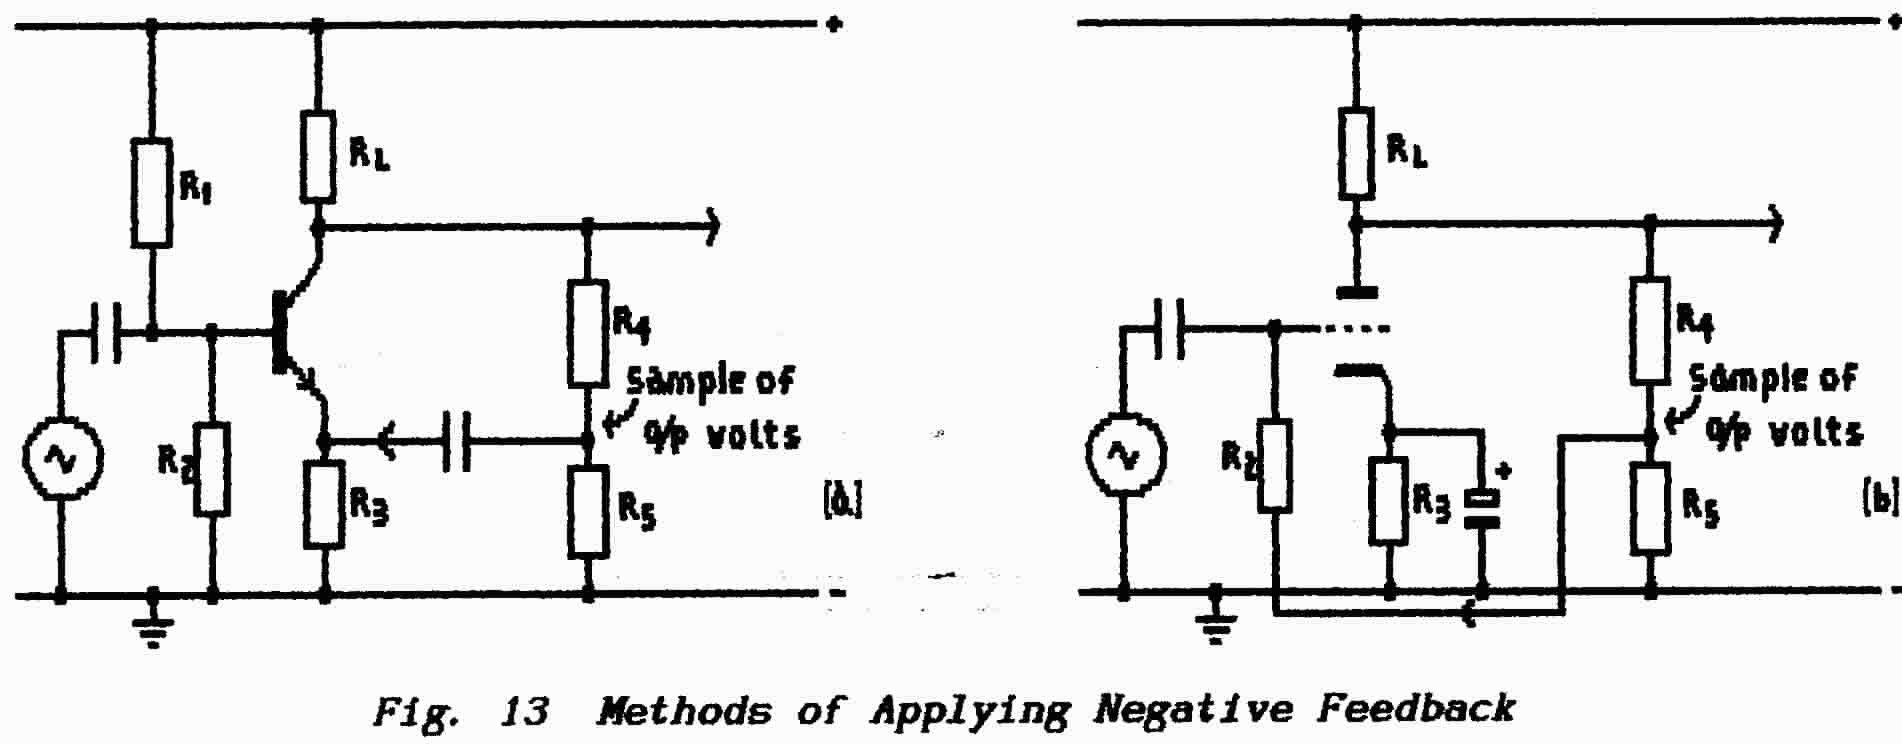 Part 3 Amplifiers Available This Circuit Is Sometimesknown As A Quadrature Oscillator For The Rae Feedback Arrangements Are Not Examined In Great Detail Familiarise Yourself With Section But Do Put Too Much Emphasis On